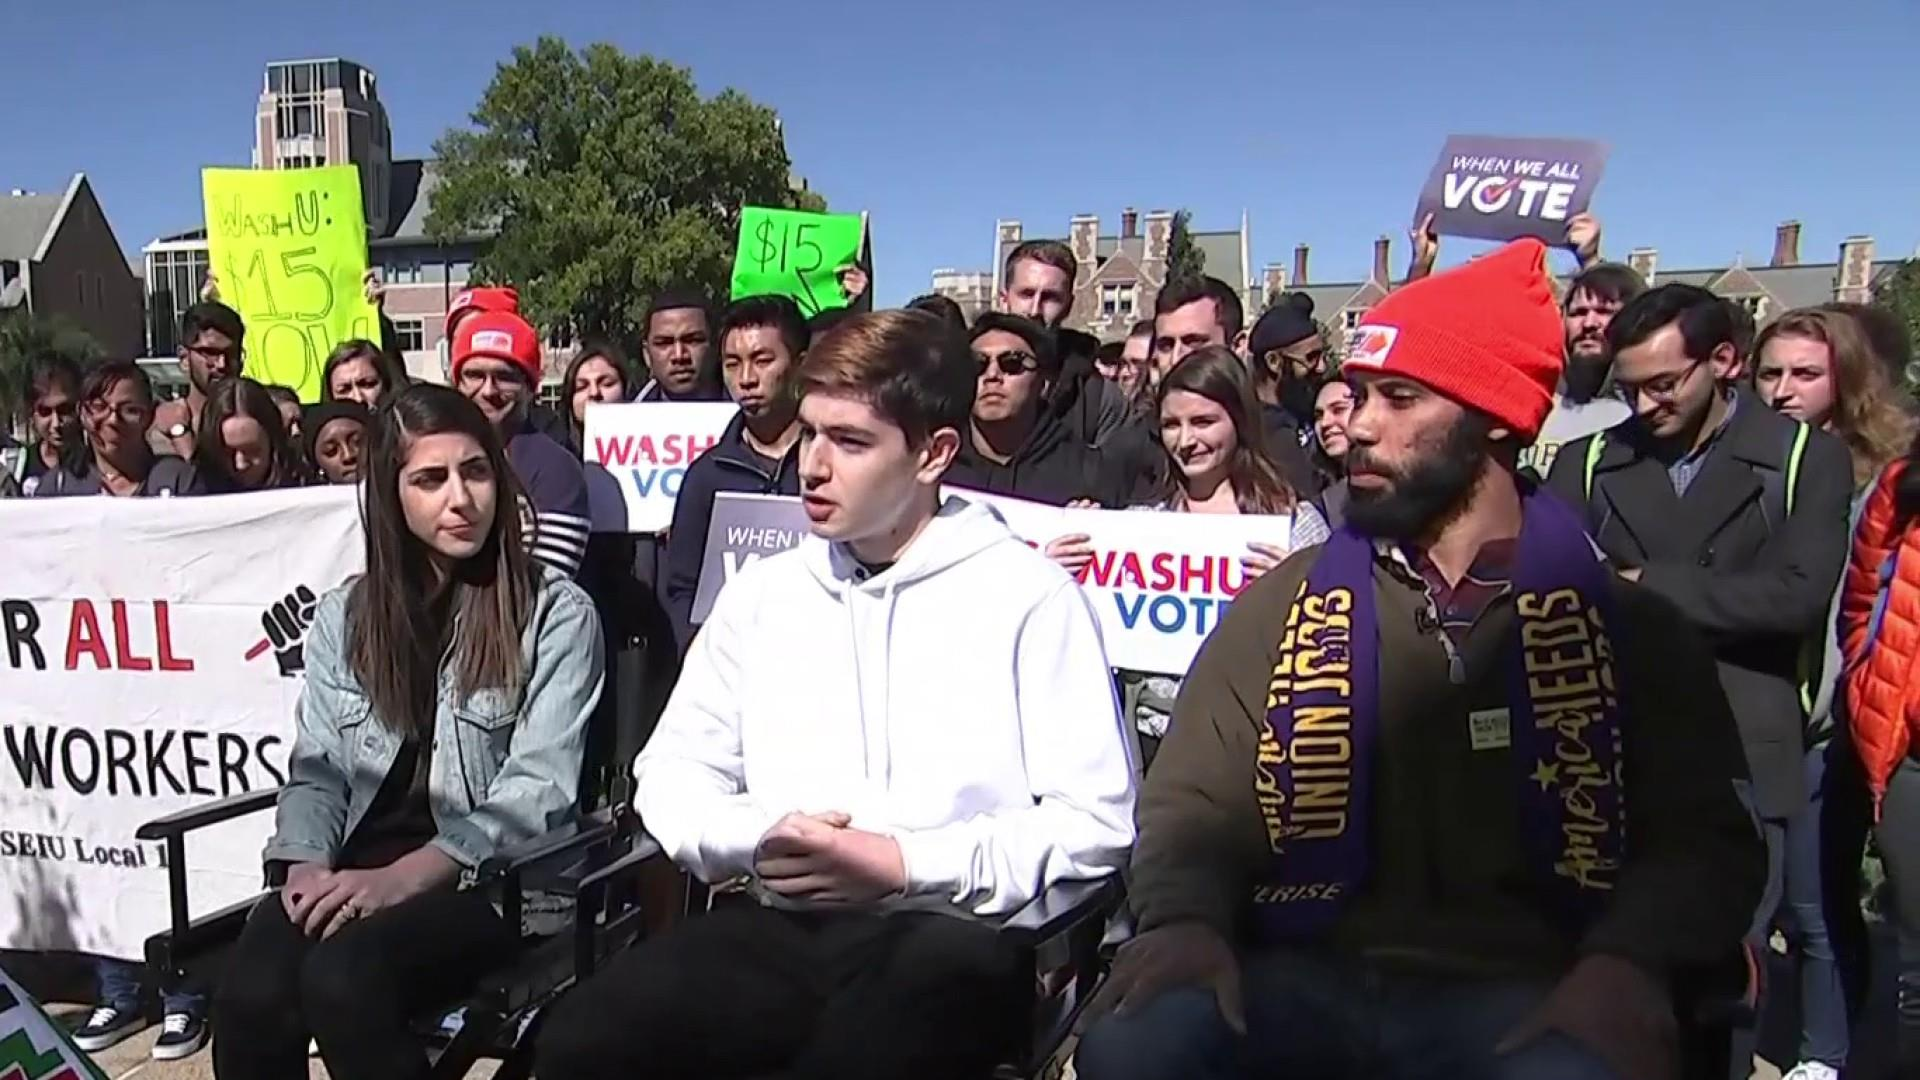 What issues are important to students at Washington University in St. Louis?